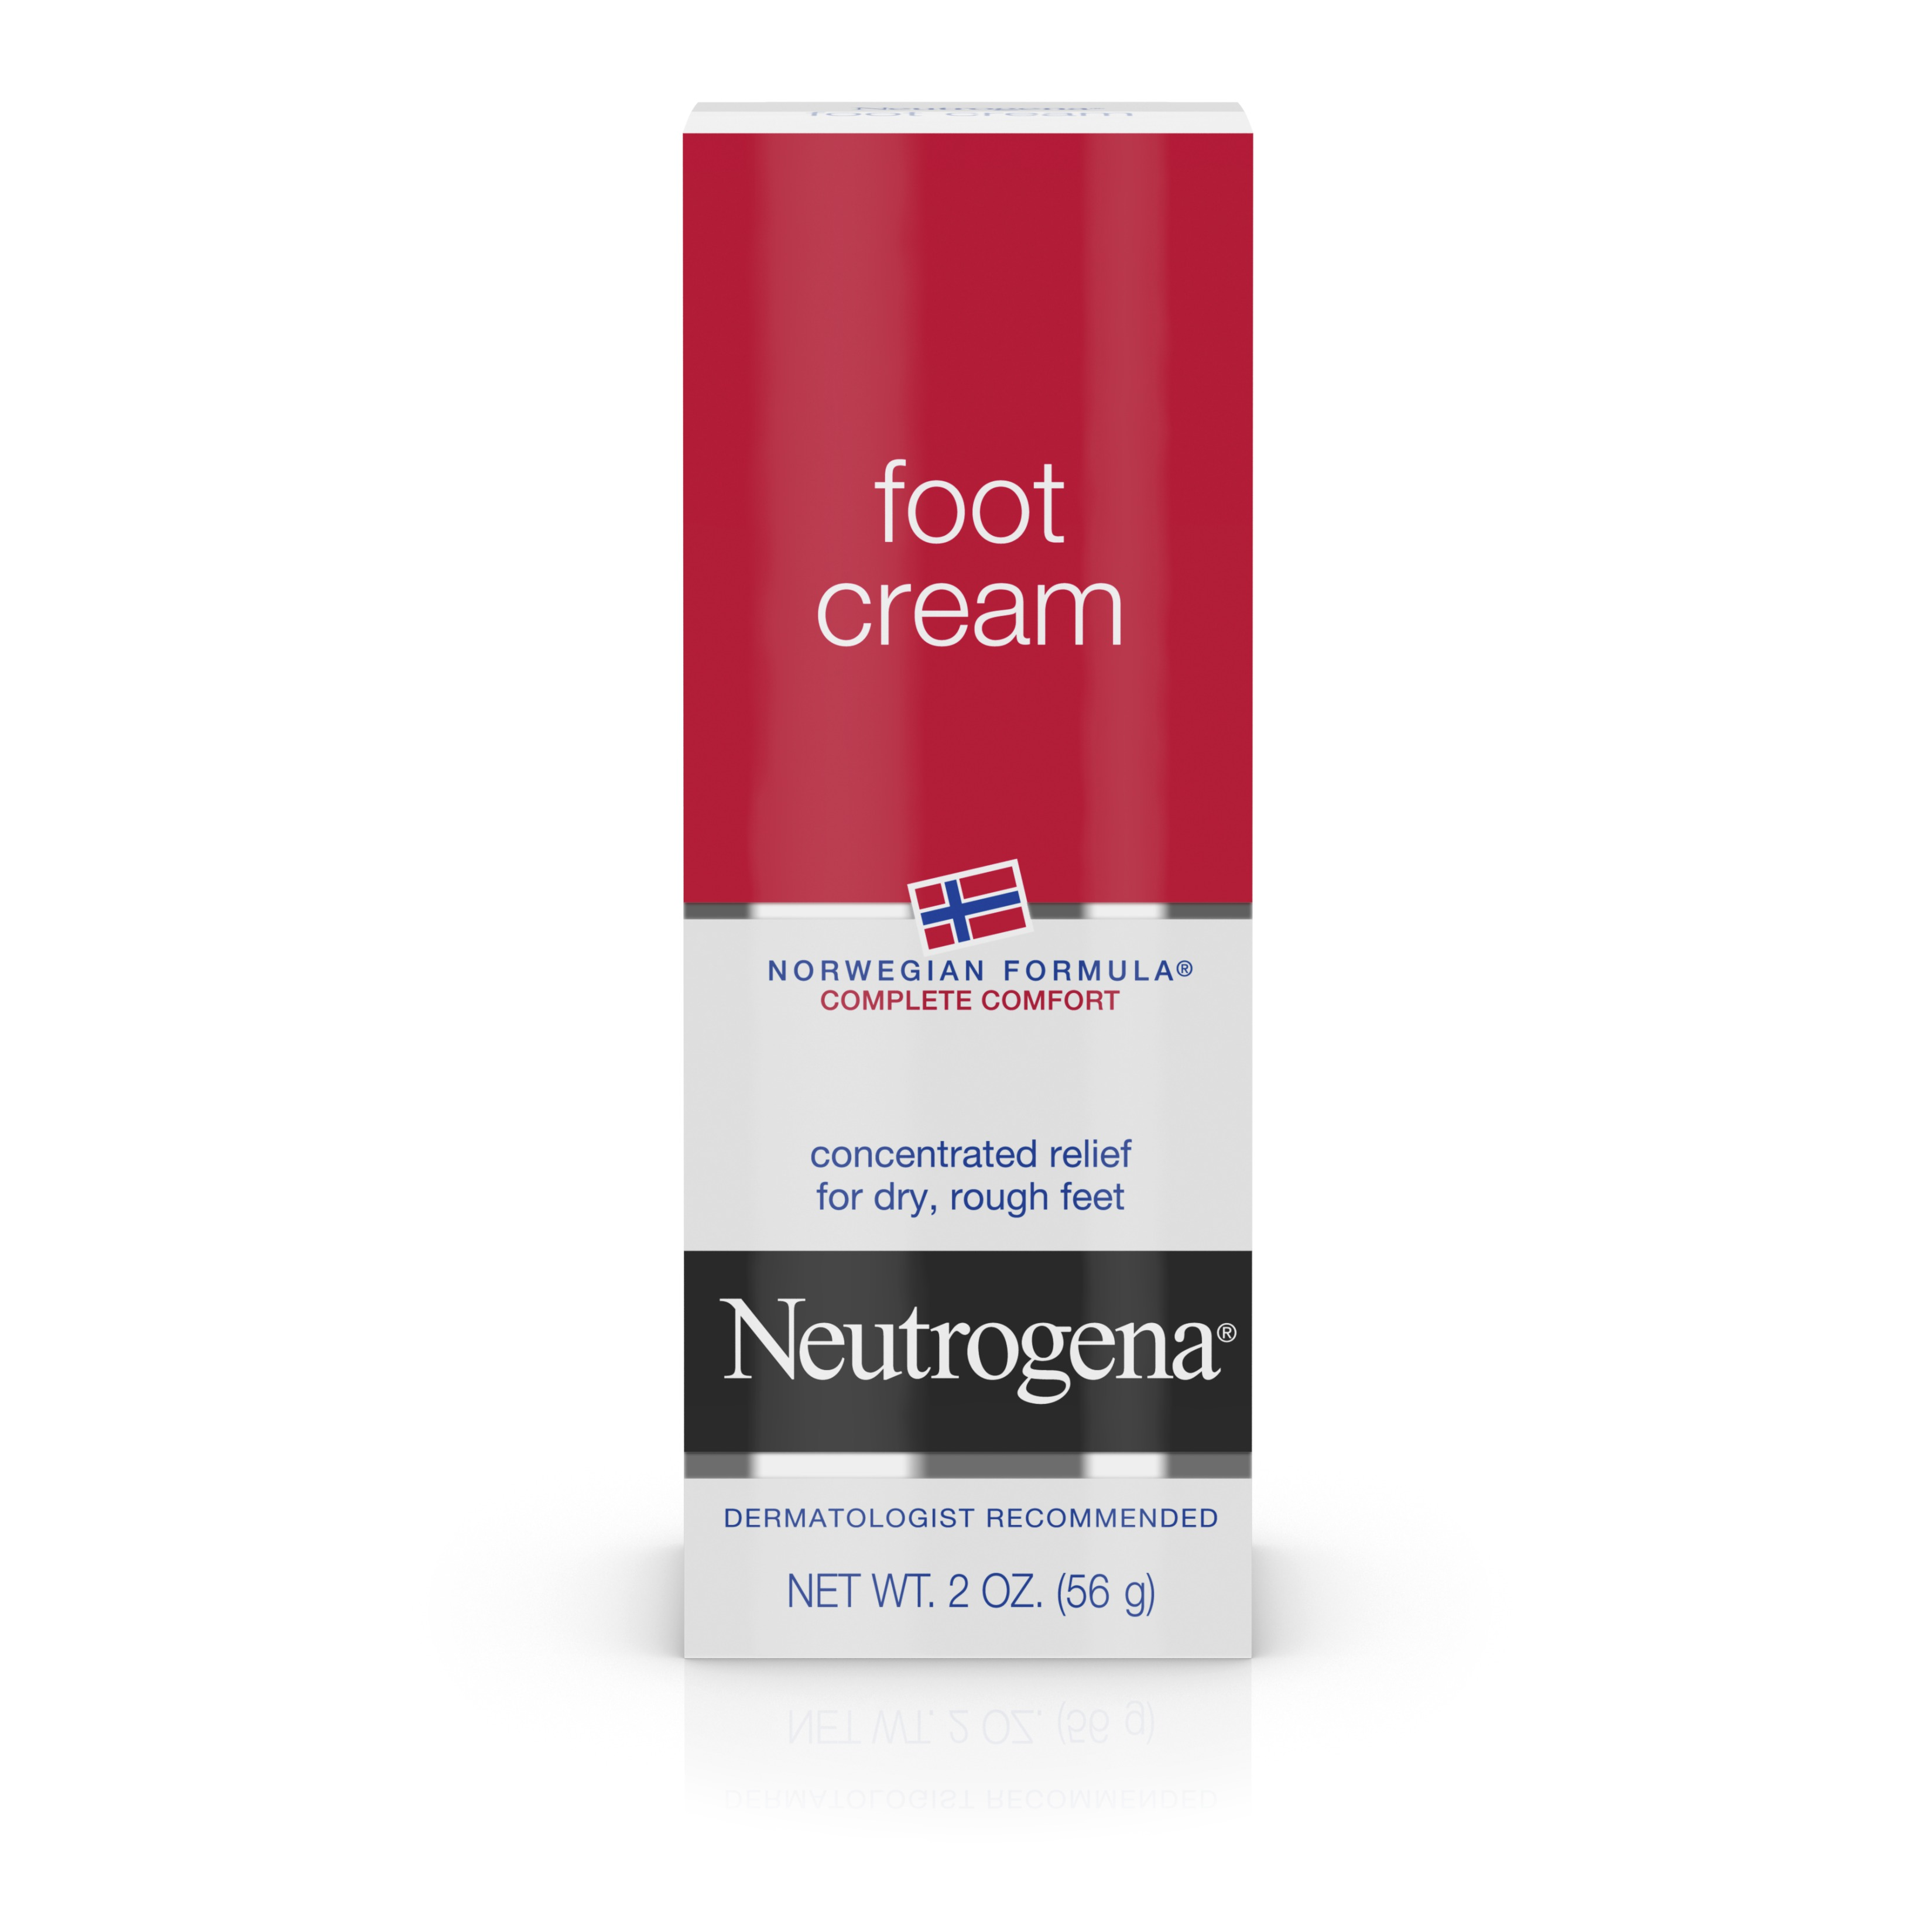 Neutrogena Norwegian Formula Moisturizing Foot Cream, 2 Oz. - Walmart.com